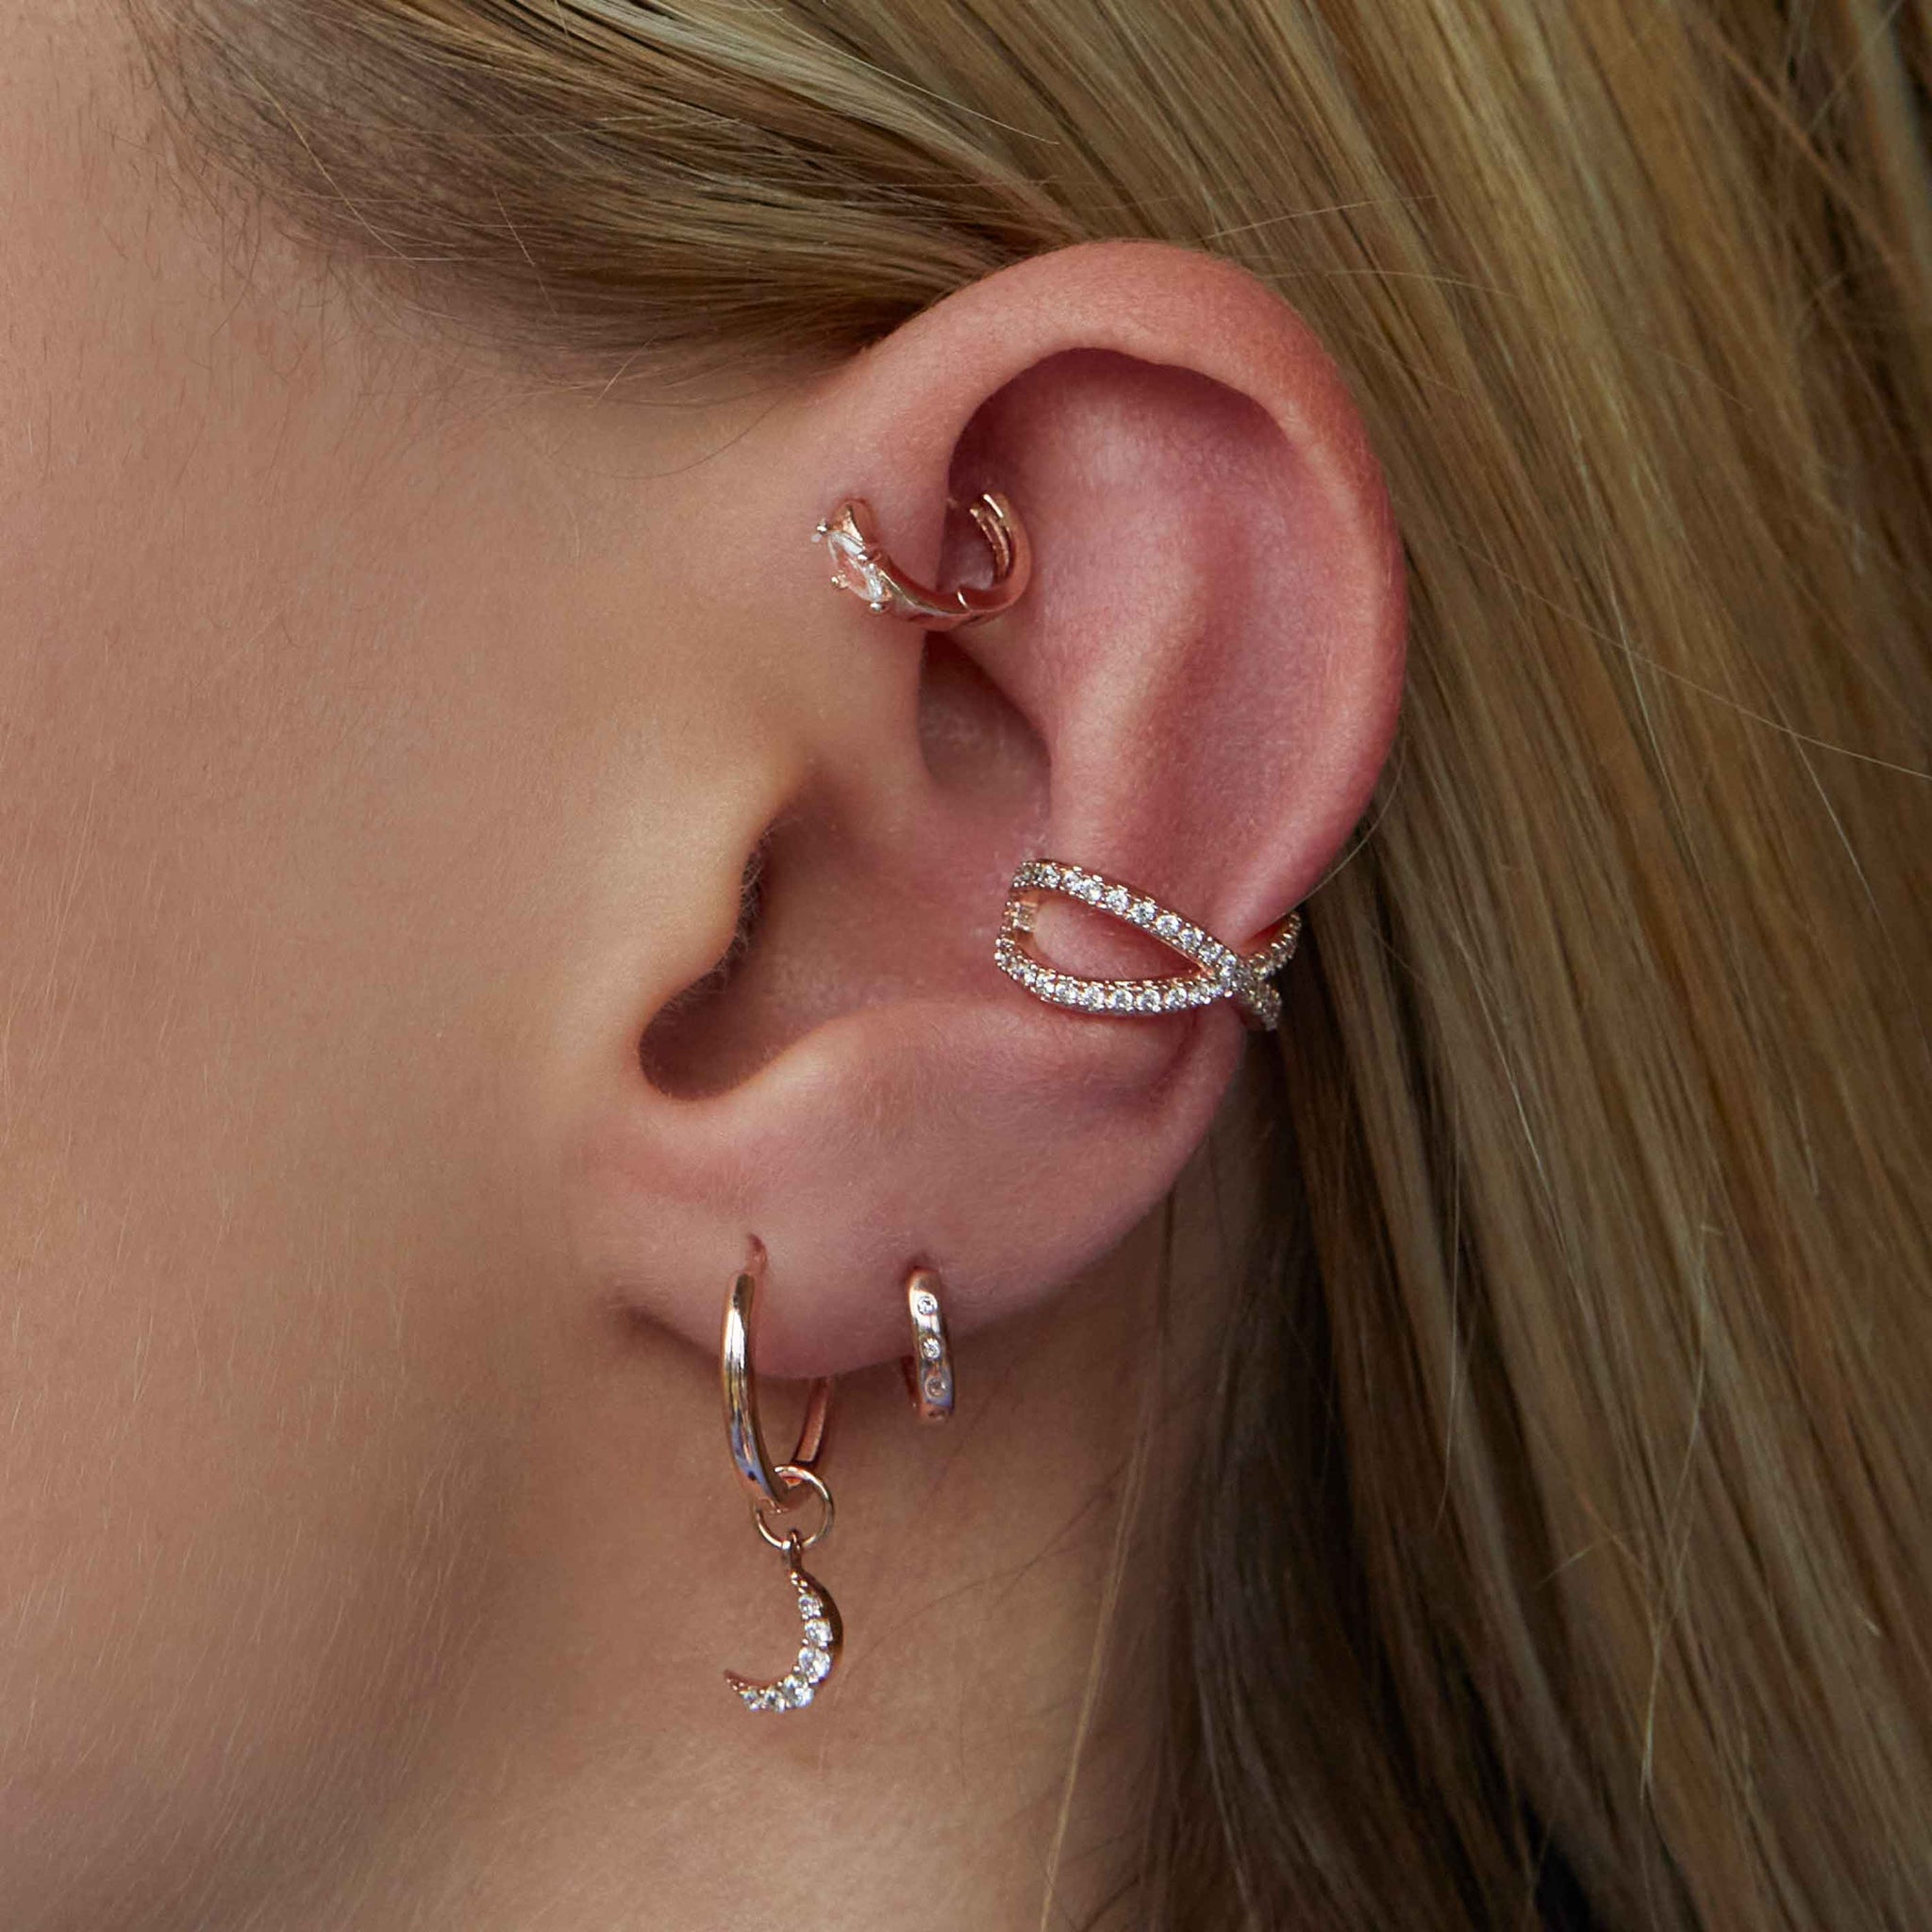 crossover ear cuff worn with rose gold earrings